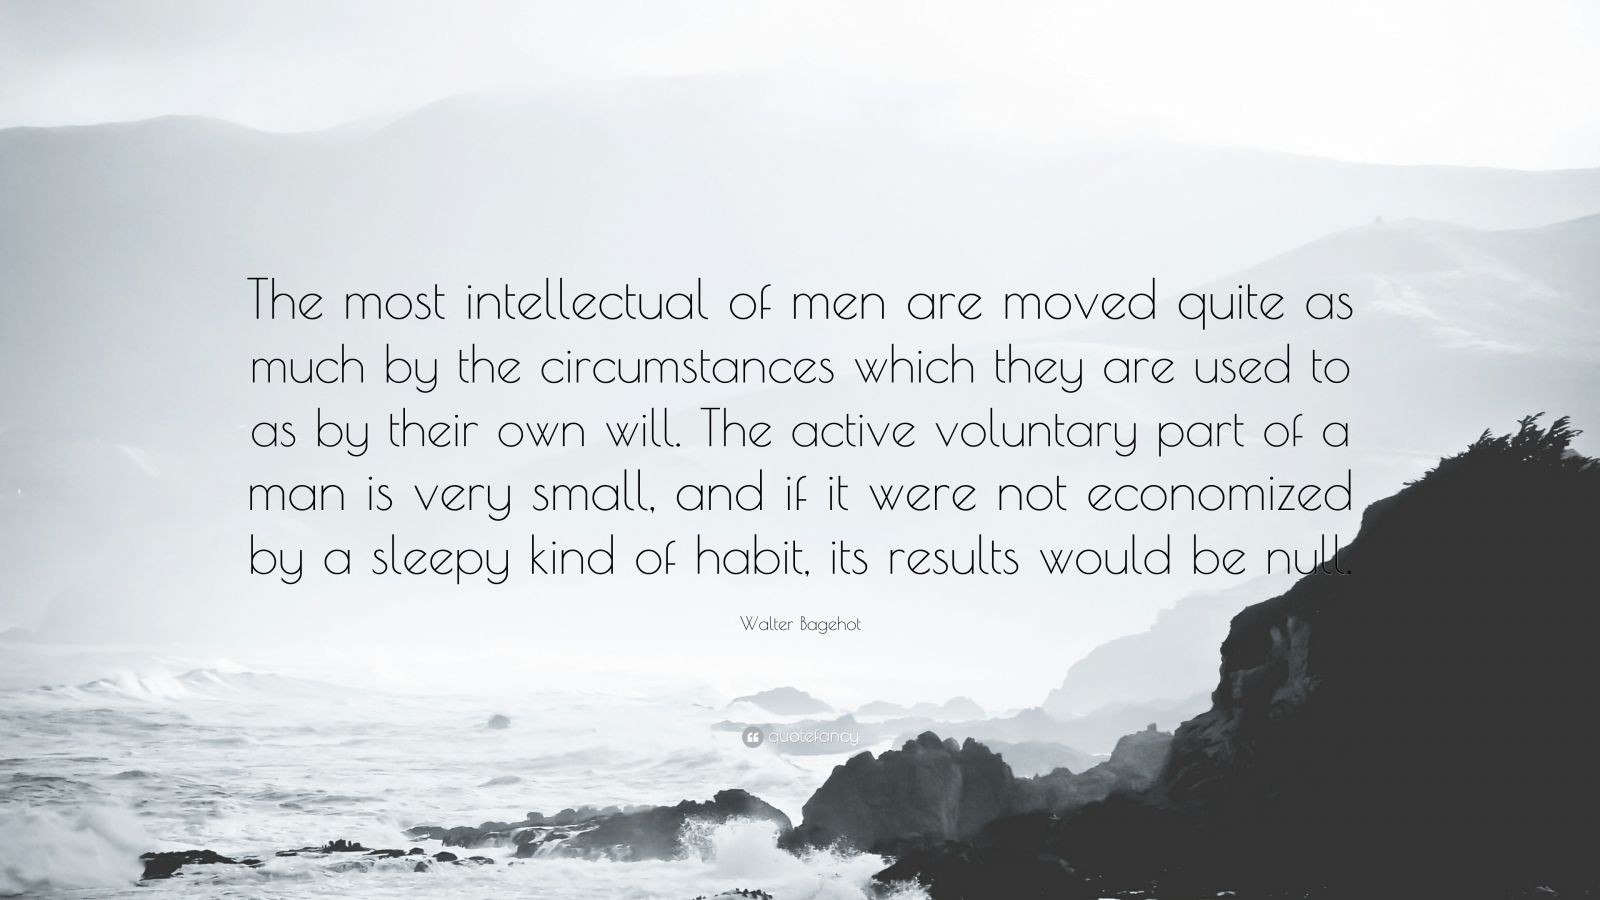 """Walter Bagehot Quote: """"The most intellectual of men are moved quite as much by the circumstances which they are used to as by their own will. The active voluntary part of a man is very small, and if it were not economized by a sleepy kind of habit, its results would be null."""""""